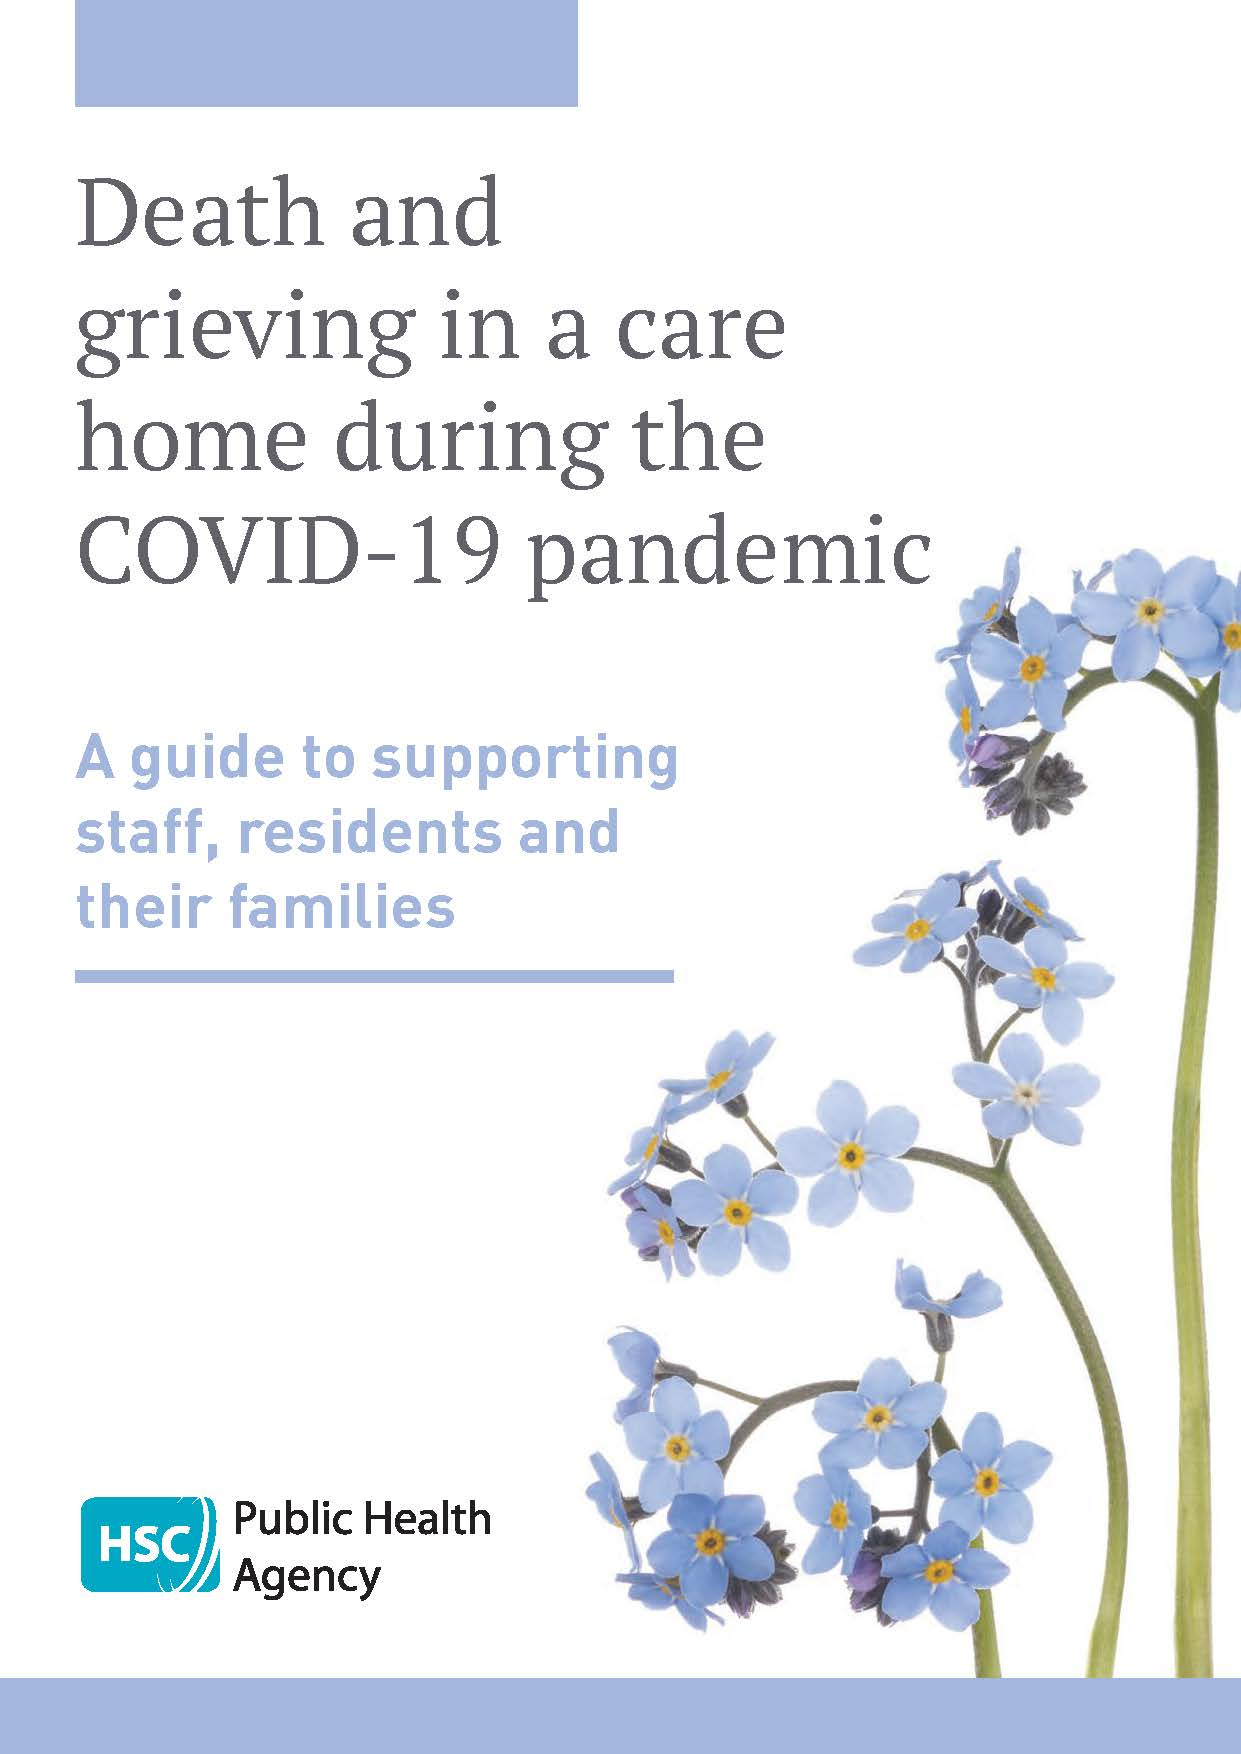 Cover of booklet on death and grieving in care homes